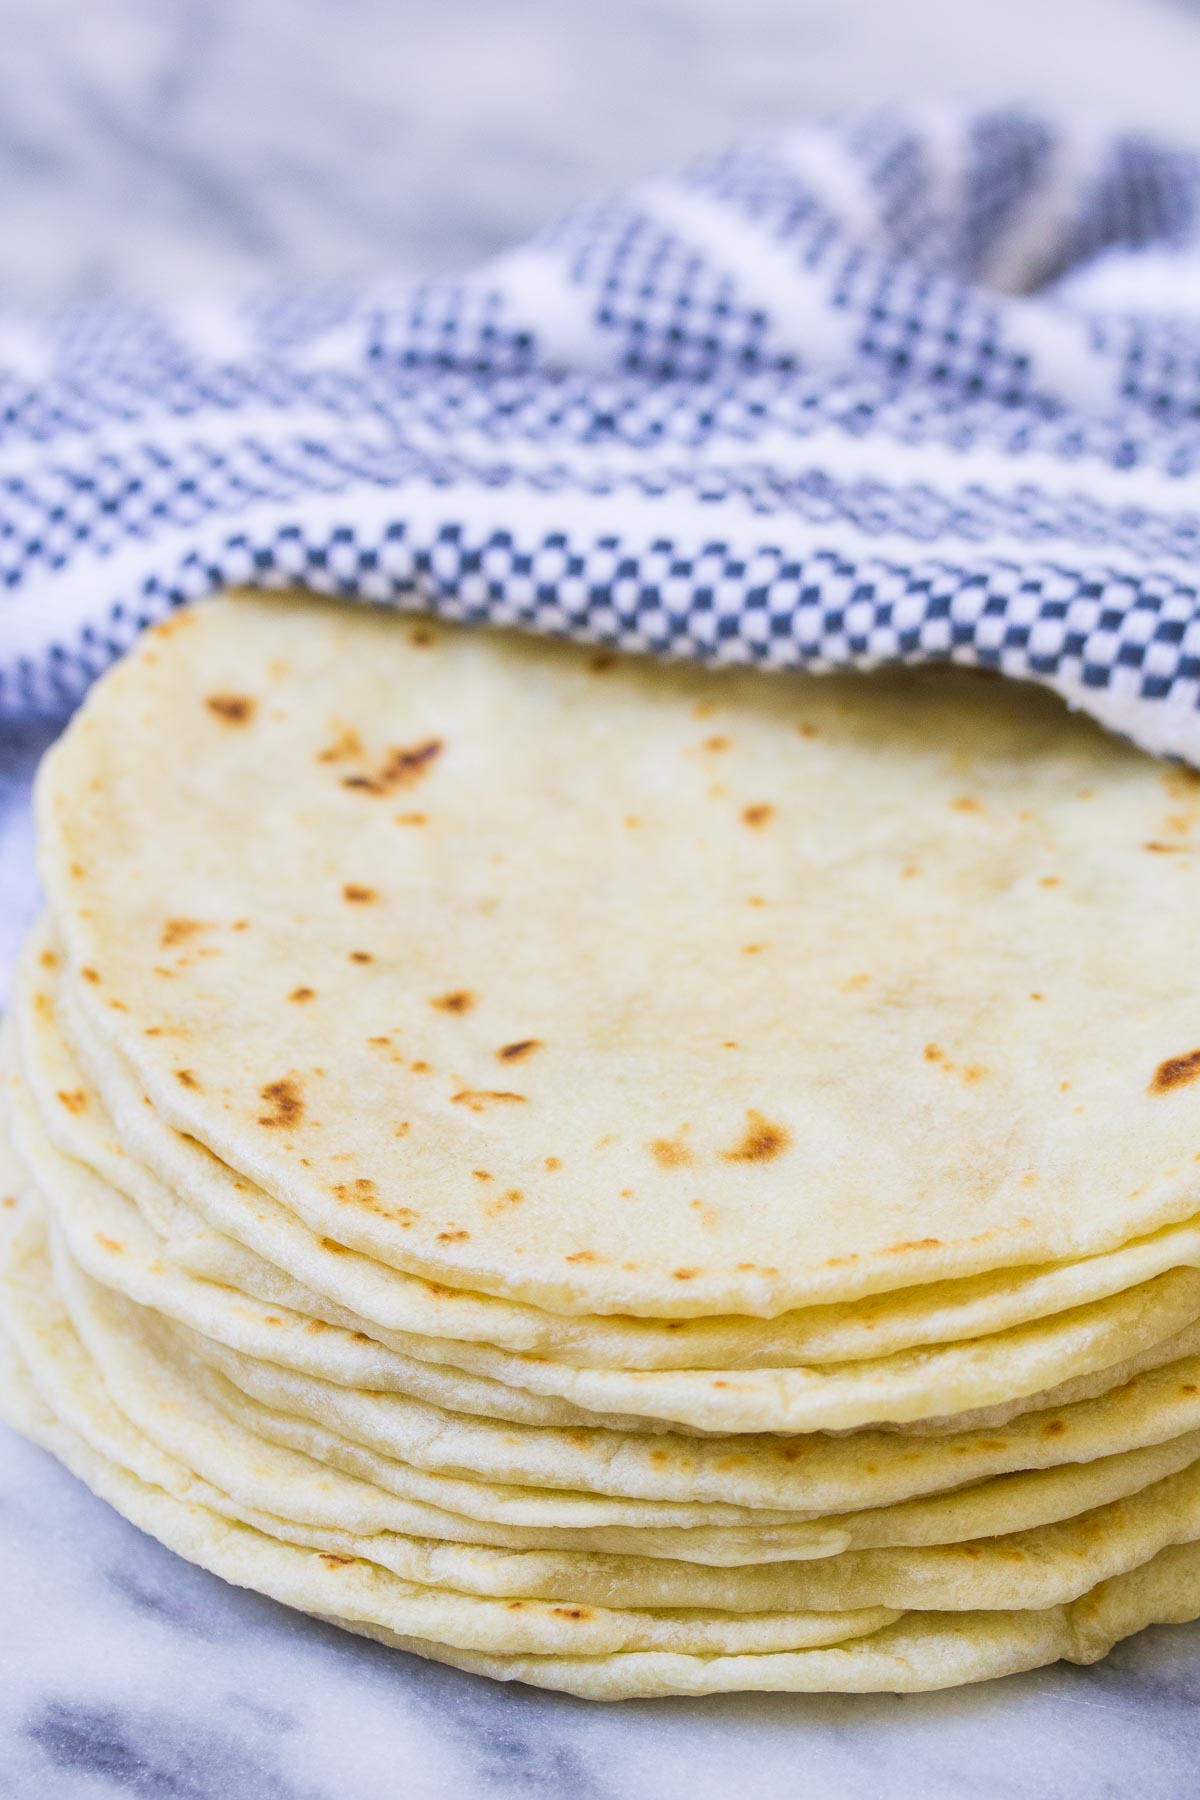 Homemade flour tortillas stacked together.